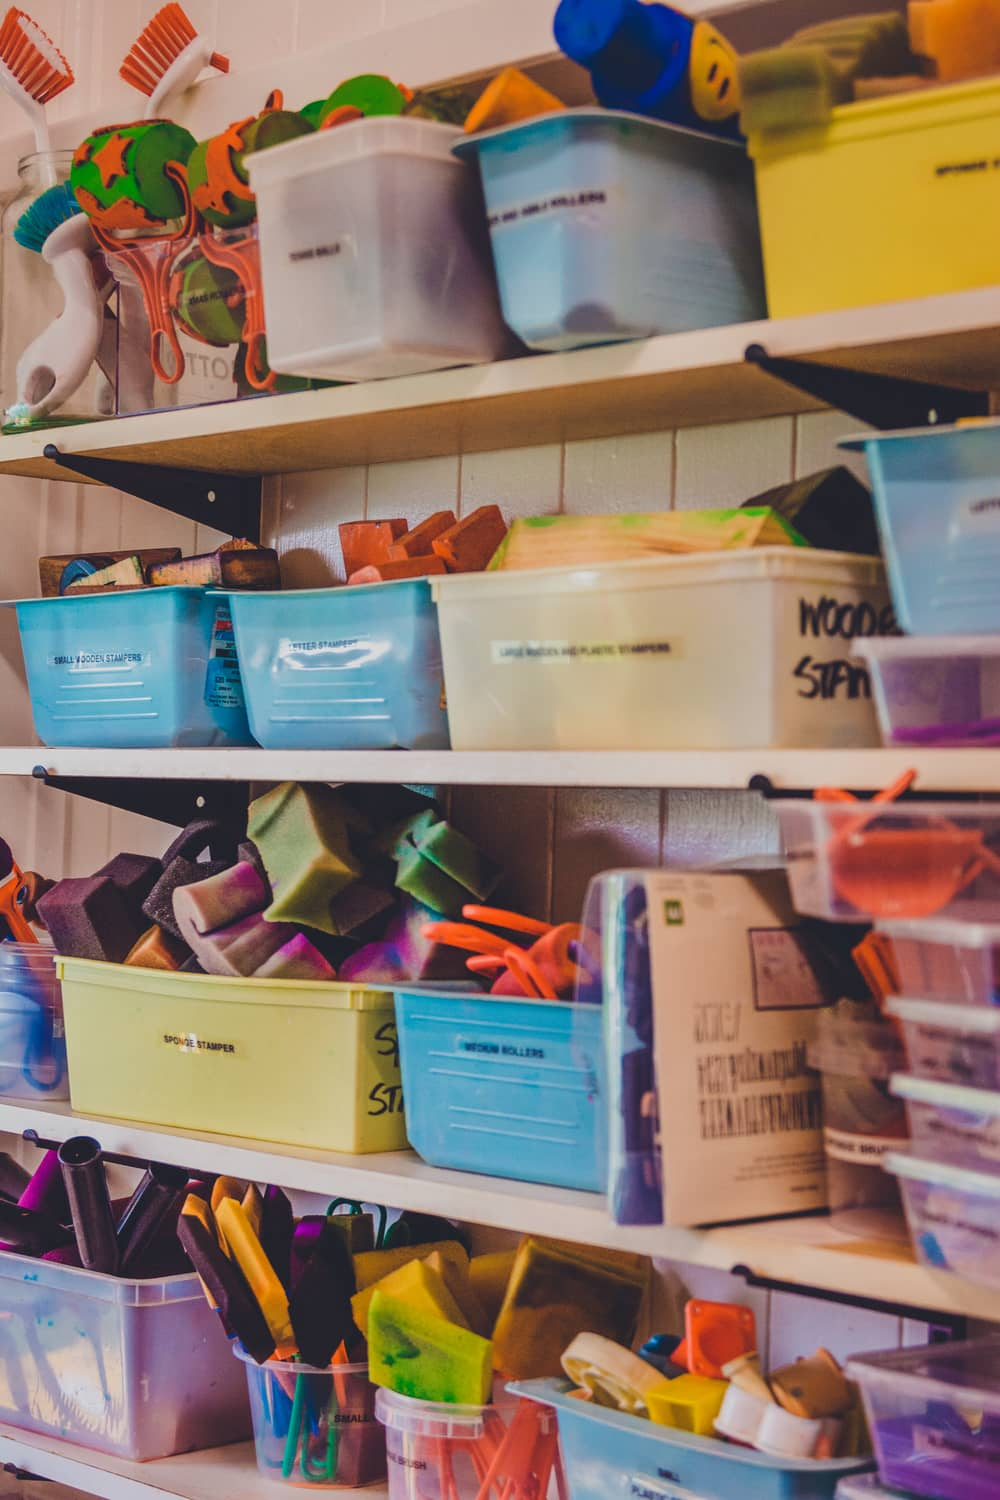 A well stocked resource cupboard with overflowing buckets at chiselhurst